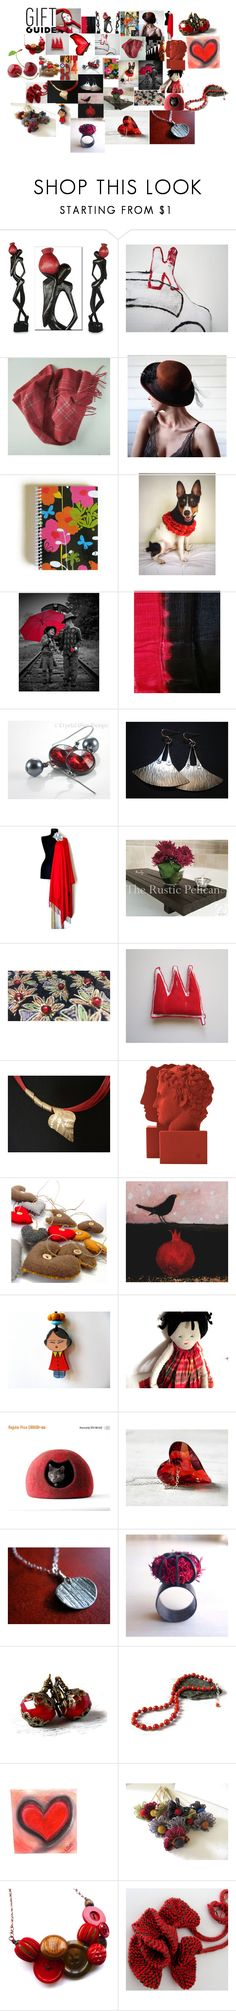 """""""GIFT GUIDE"""" by talma-vardi ❤ liked on Polyvore featuring NOVICA, Charter Club, Sophia and Sí.Sí Design"""